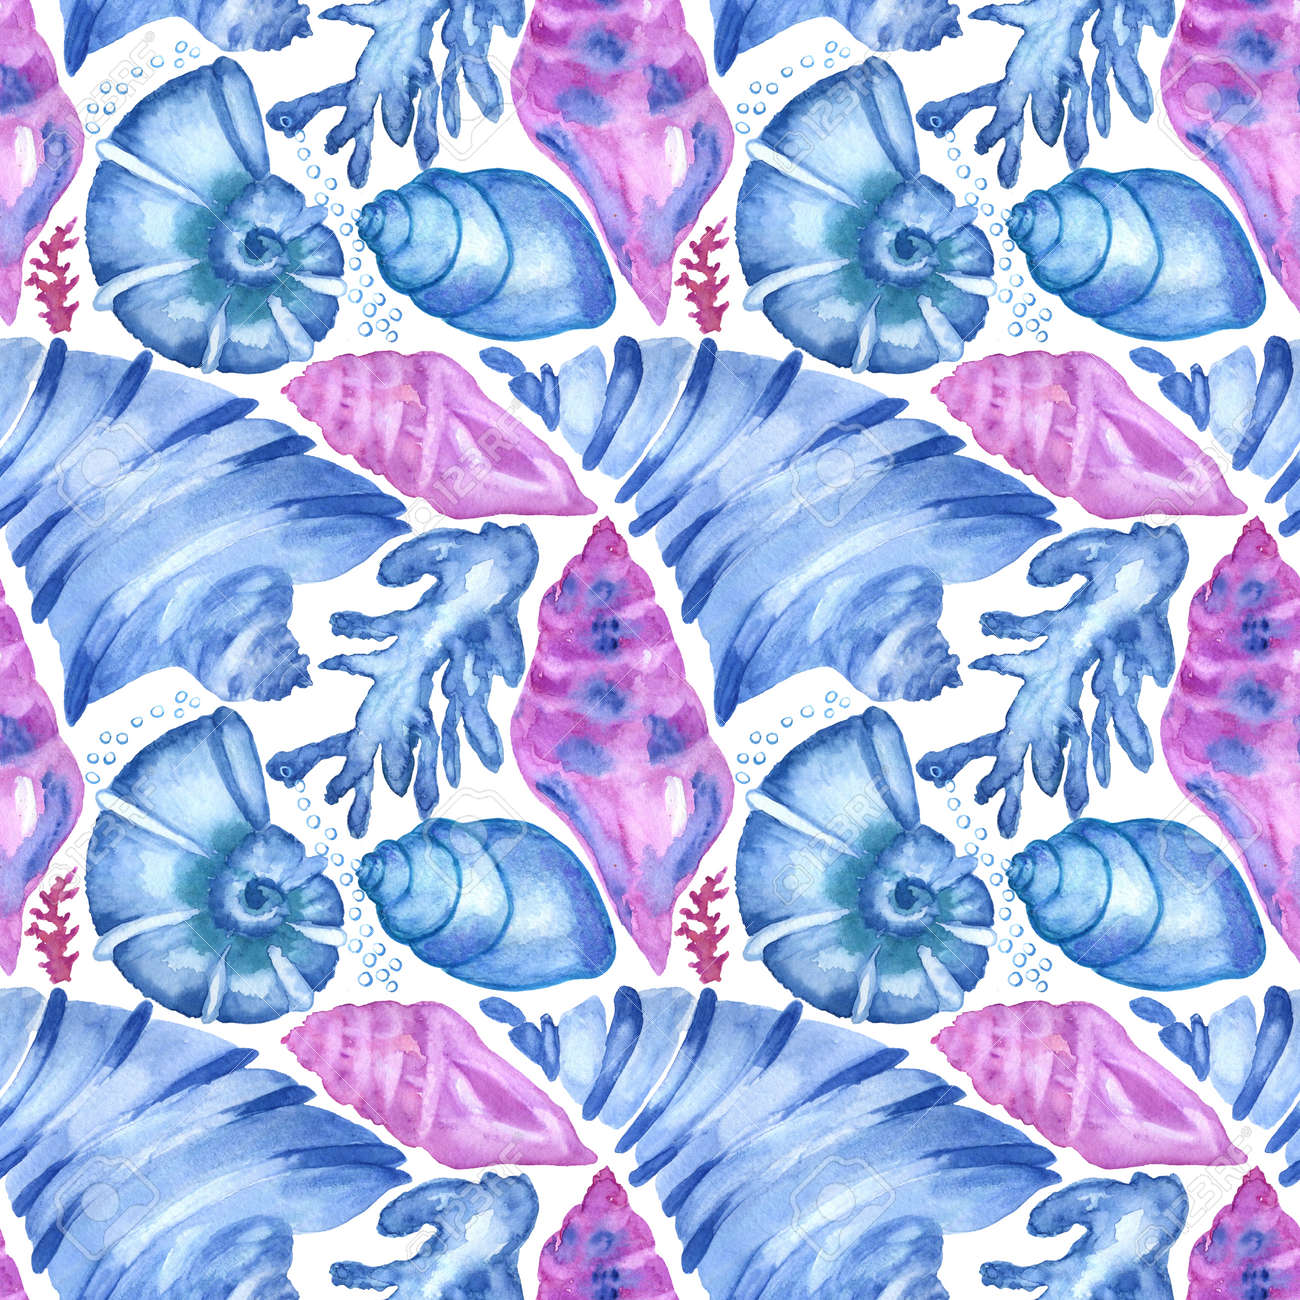 Marine background with seashells, starfishes and corals. Watercolor seamless pattern. Perfect for creating fabrics, textile, decoupage, wallpapers, print, gift wrapping paper, invitations, textile. - 167692113